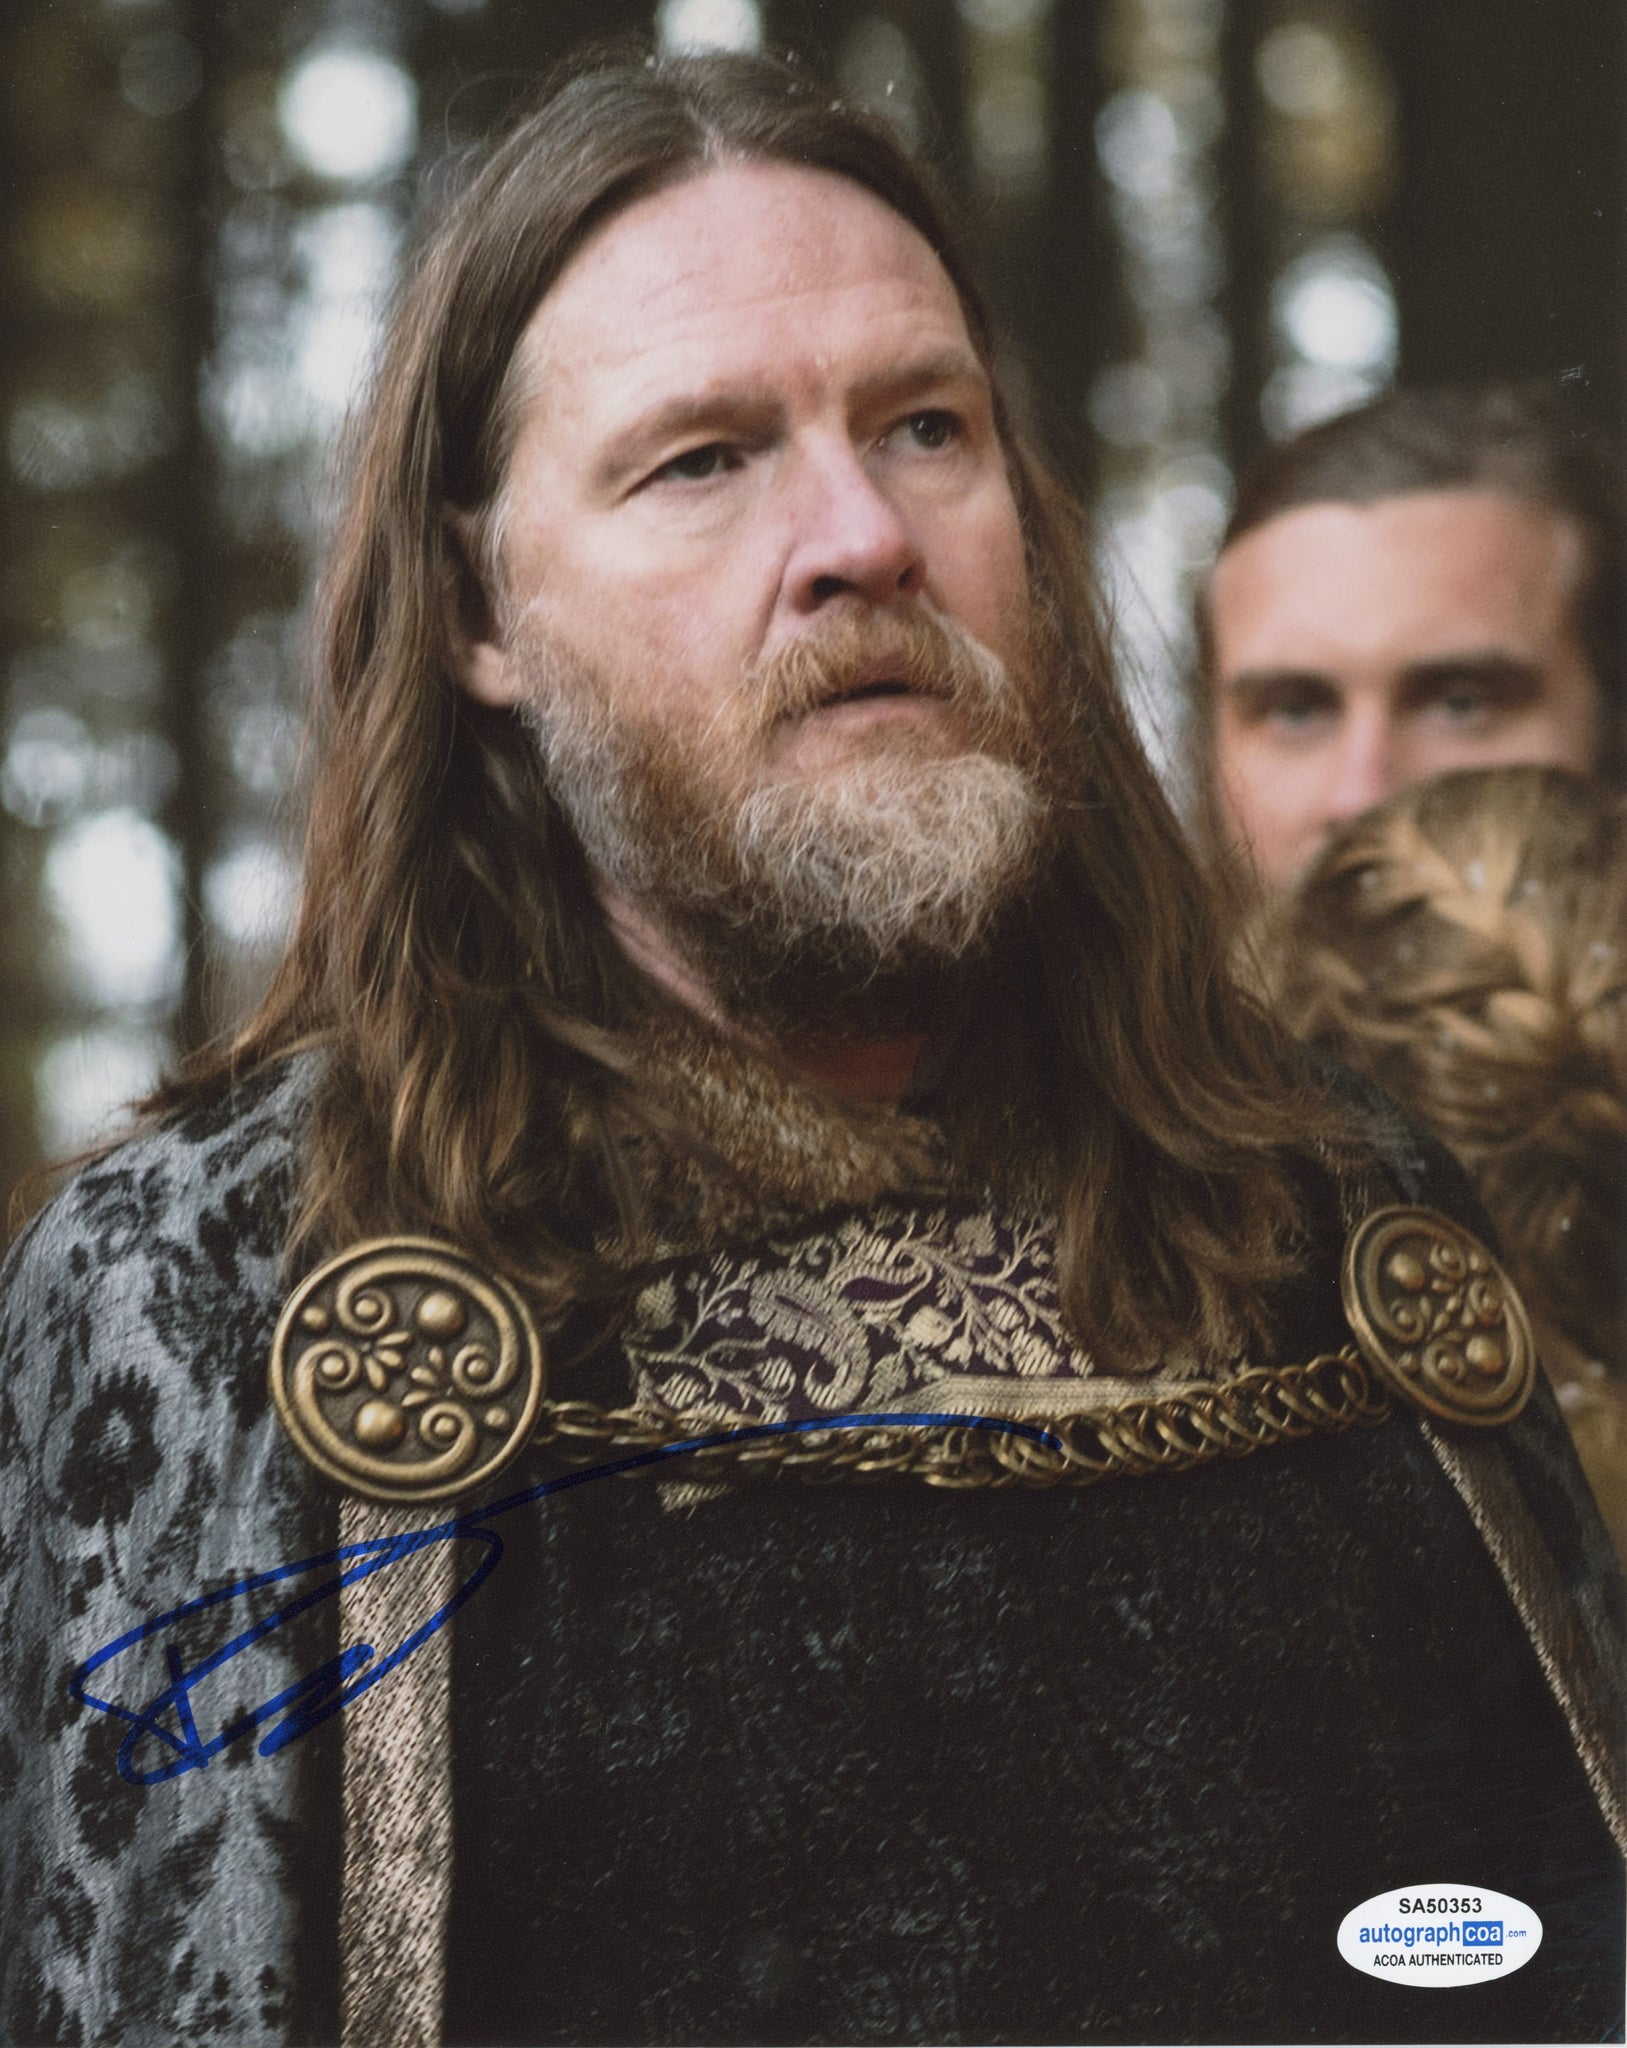 Donal Logue Vikings Signed Autograph 8x10 Photo ACOA